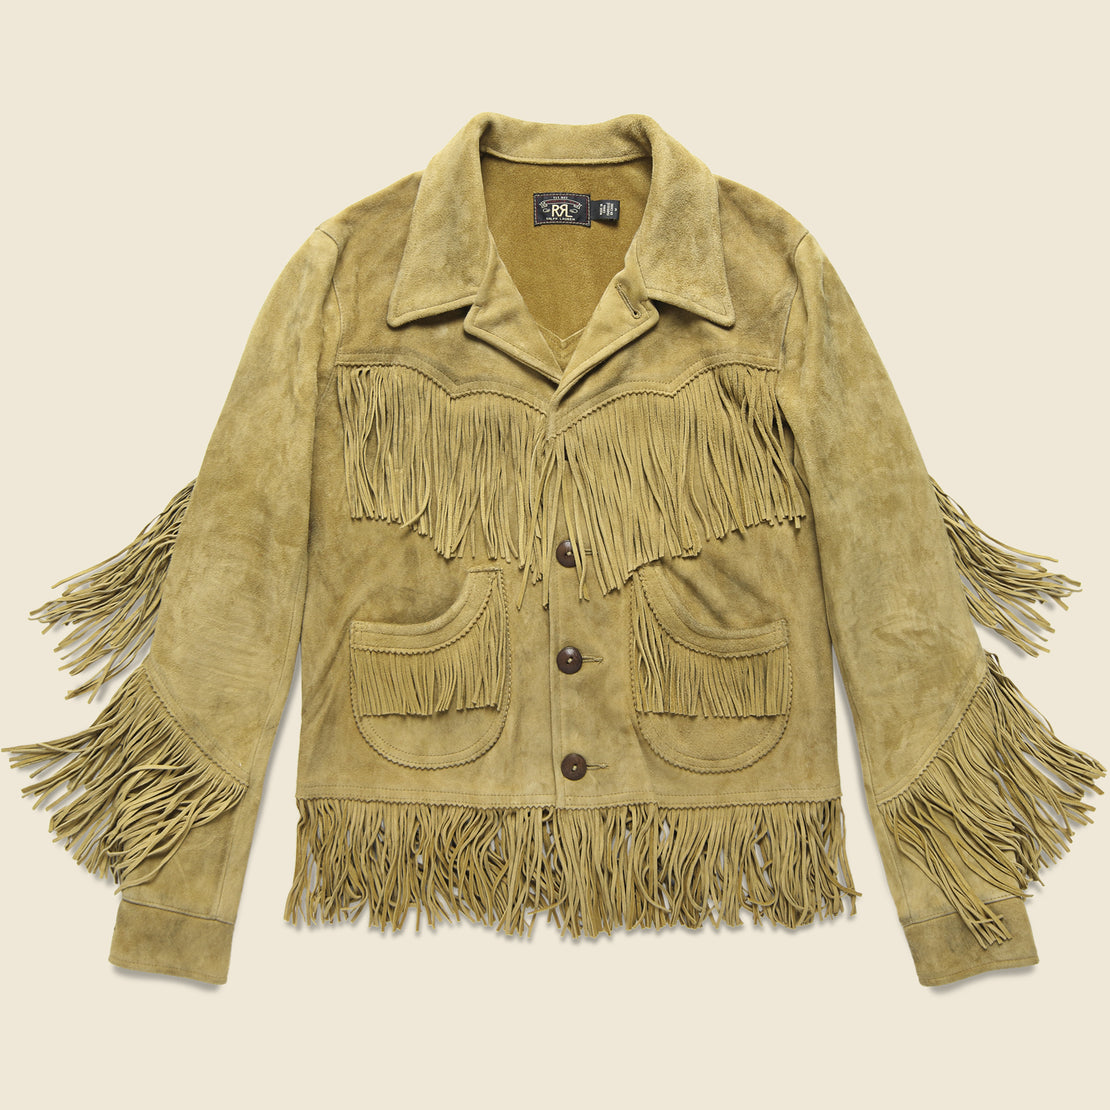 RRL Lexington Fringe Jacket - Tan Suede